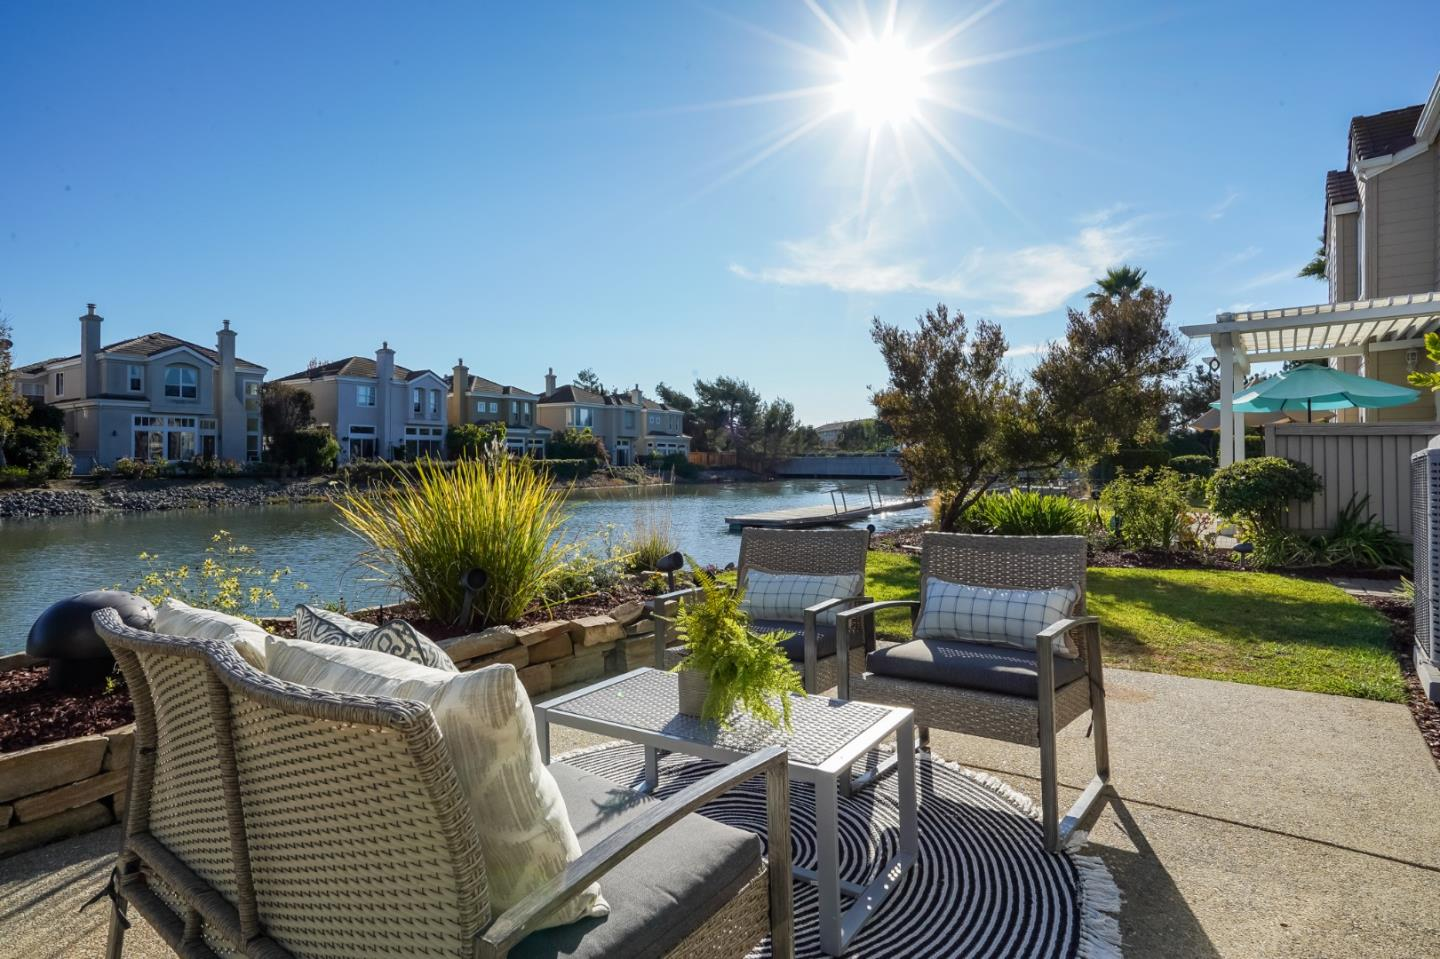 This gorgeous waterfront home offers resort style living in the Harbor Court neighborhood of RWS. Boasting extraordinary living & optimal entertaining flow. This home sits at the end of a cul-de-sac w/the backyard facing the water. This fabulous home has 4 luxurious bdrms, 2.5 baths + air conditioning.The entertainment-sized living rm w/fireplace features built in media system & gas fireplace. Formal entry boasting soaring ceilings, oversized dining rm w/a wine cellar adjoining the chef's kitchen featuring slate floors, Thermadore microwave, warming drawer, stone countertops, tiled backsplash, stainless steel refrigerator, island w/2nd oven & eat-in kitchen. The glass door opens to the patio w/mesmerizing tranquil water views & landscaped yard. Abundant natural light! Upstairs are 4 bdrms + 2 baths. The luxurious owners suite features hrdw floors, hi ceilings, 2 closets w/ waterfront views. The owners bath has a stall shower, jetted tub & double sinks. 3-car garage with a media area.